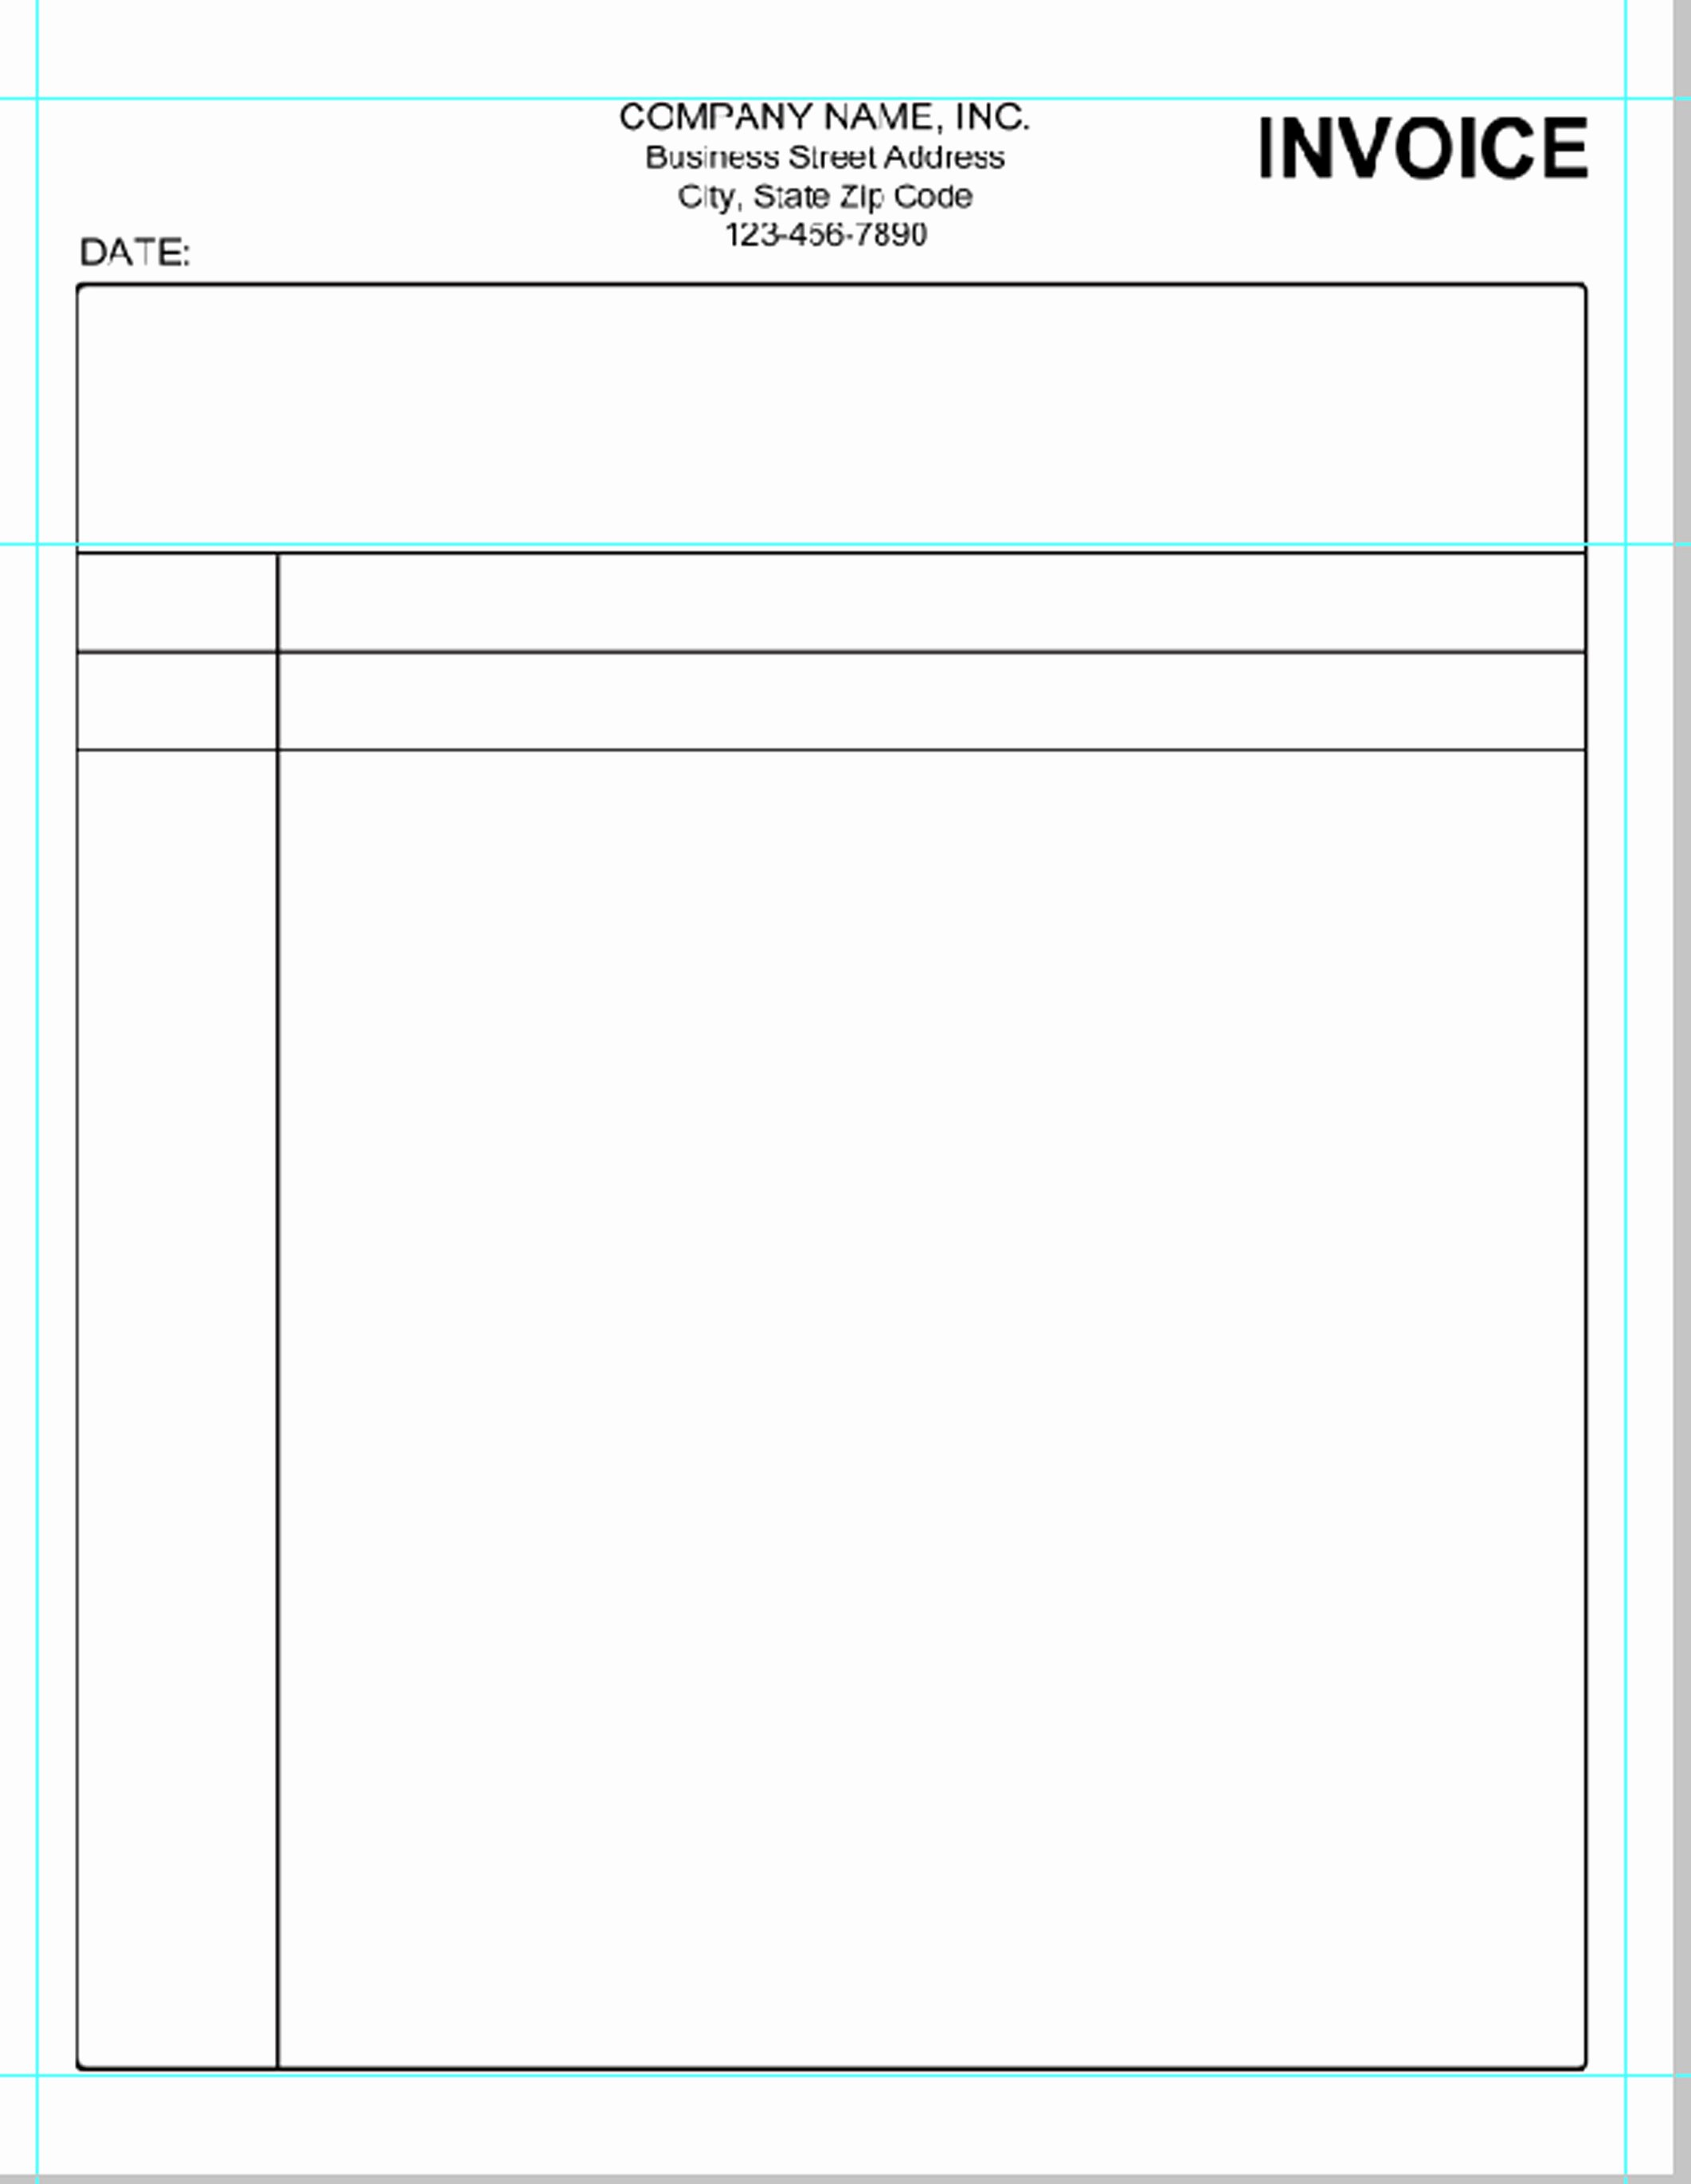 Blank Invoice Template Pdf Best Of Simple Invoice Template Pdf